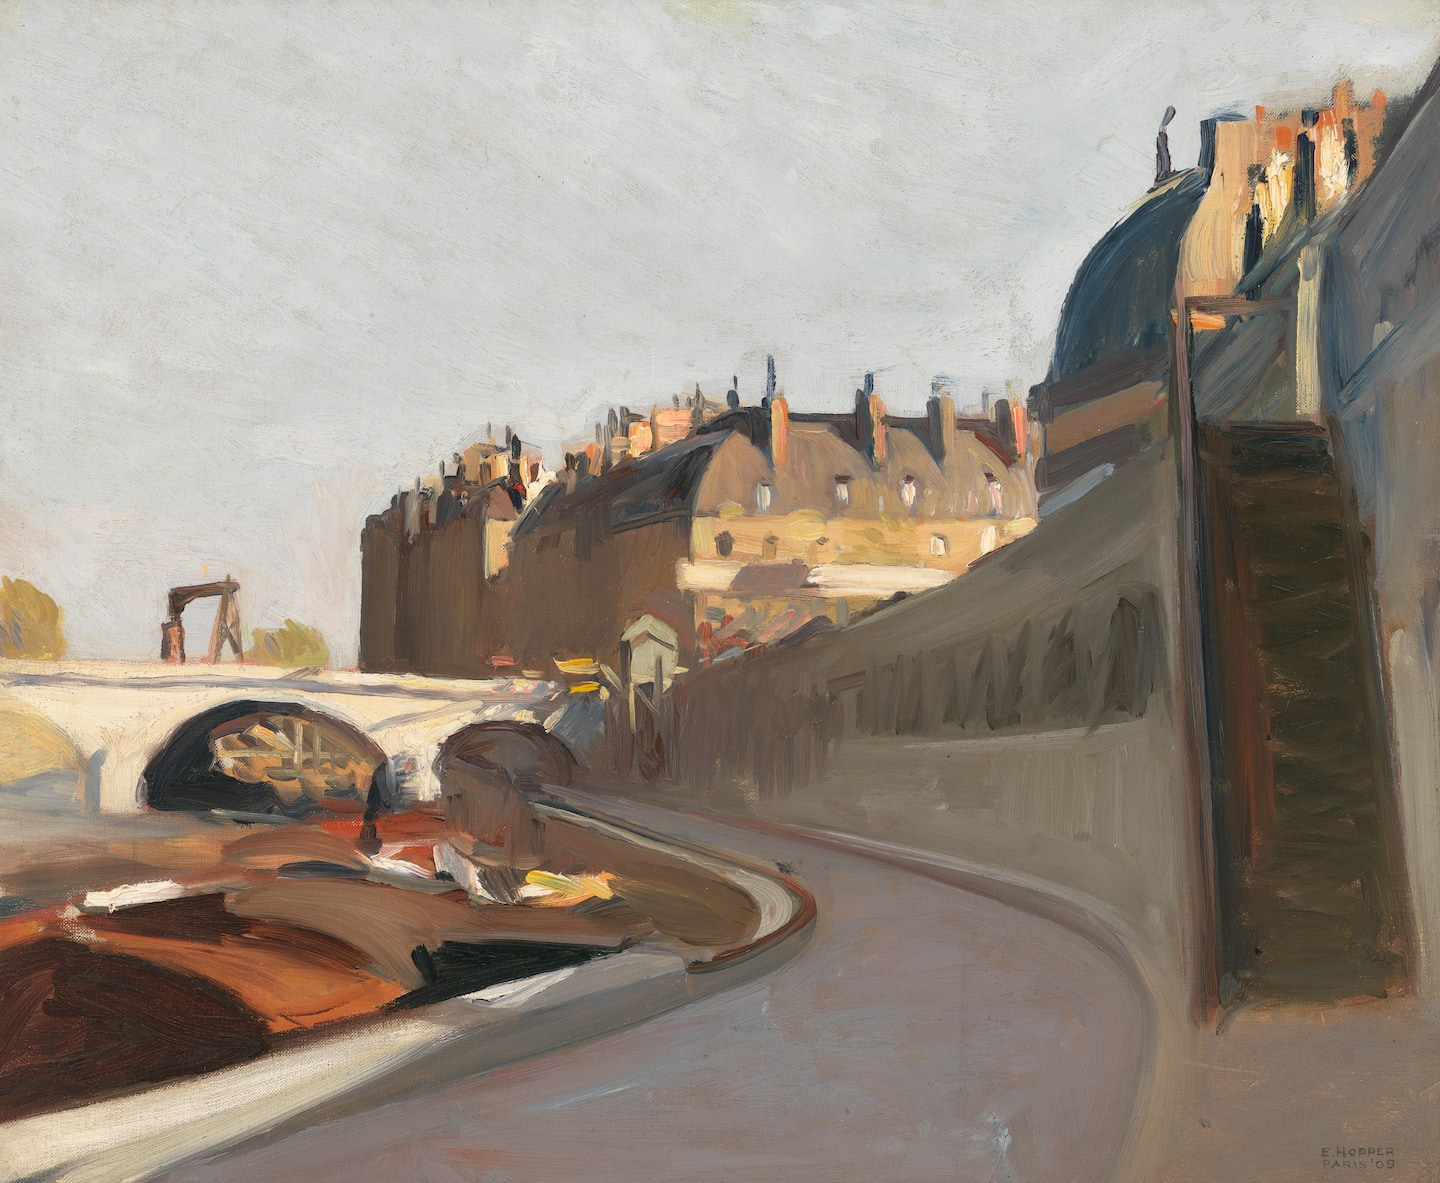 In Hopper's early Paris paintings, reflections of today's strange, desolate cities